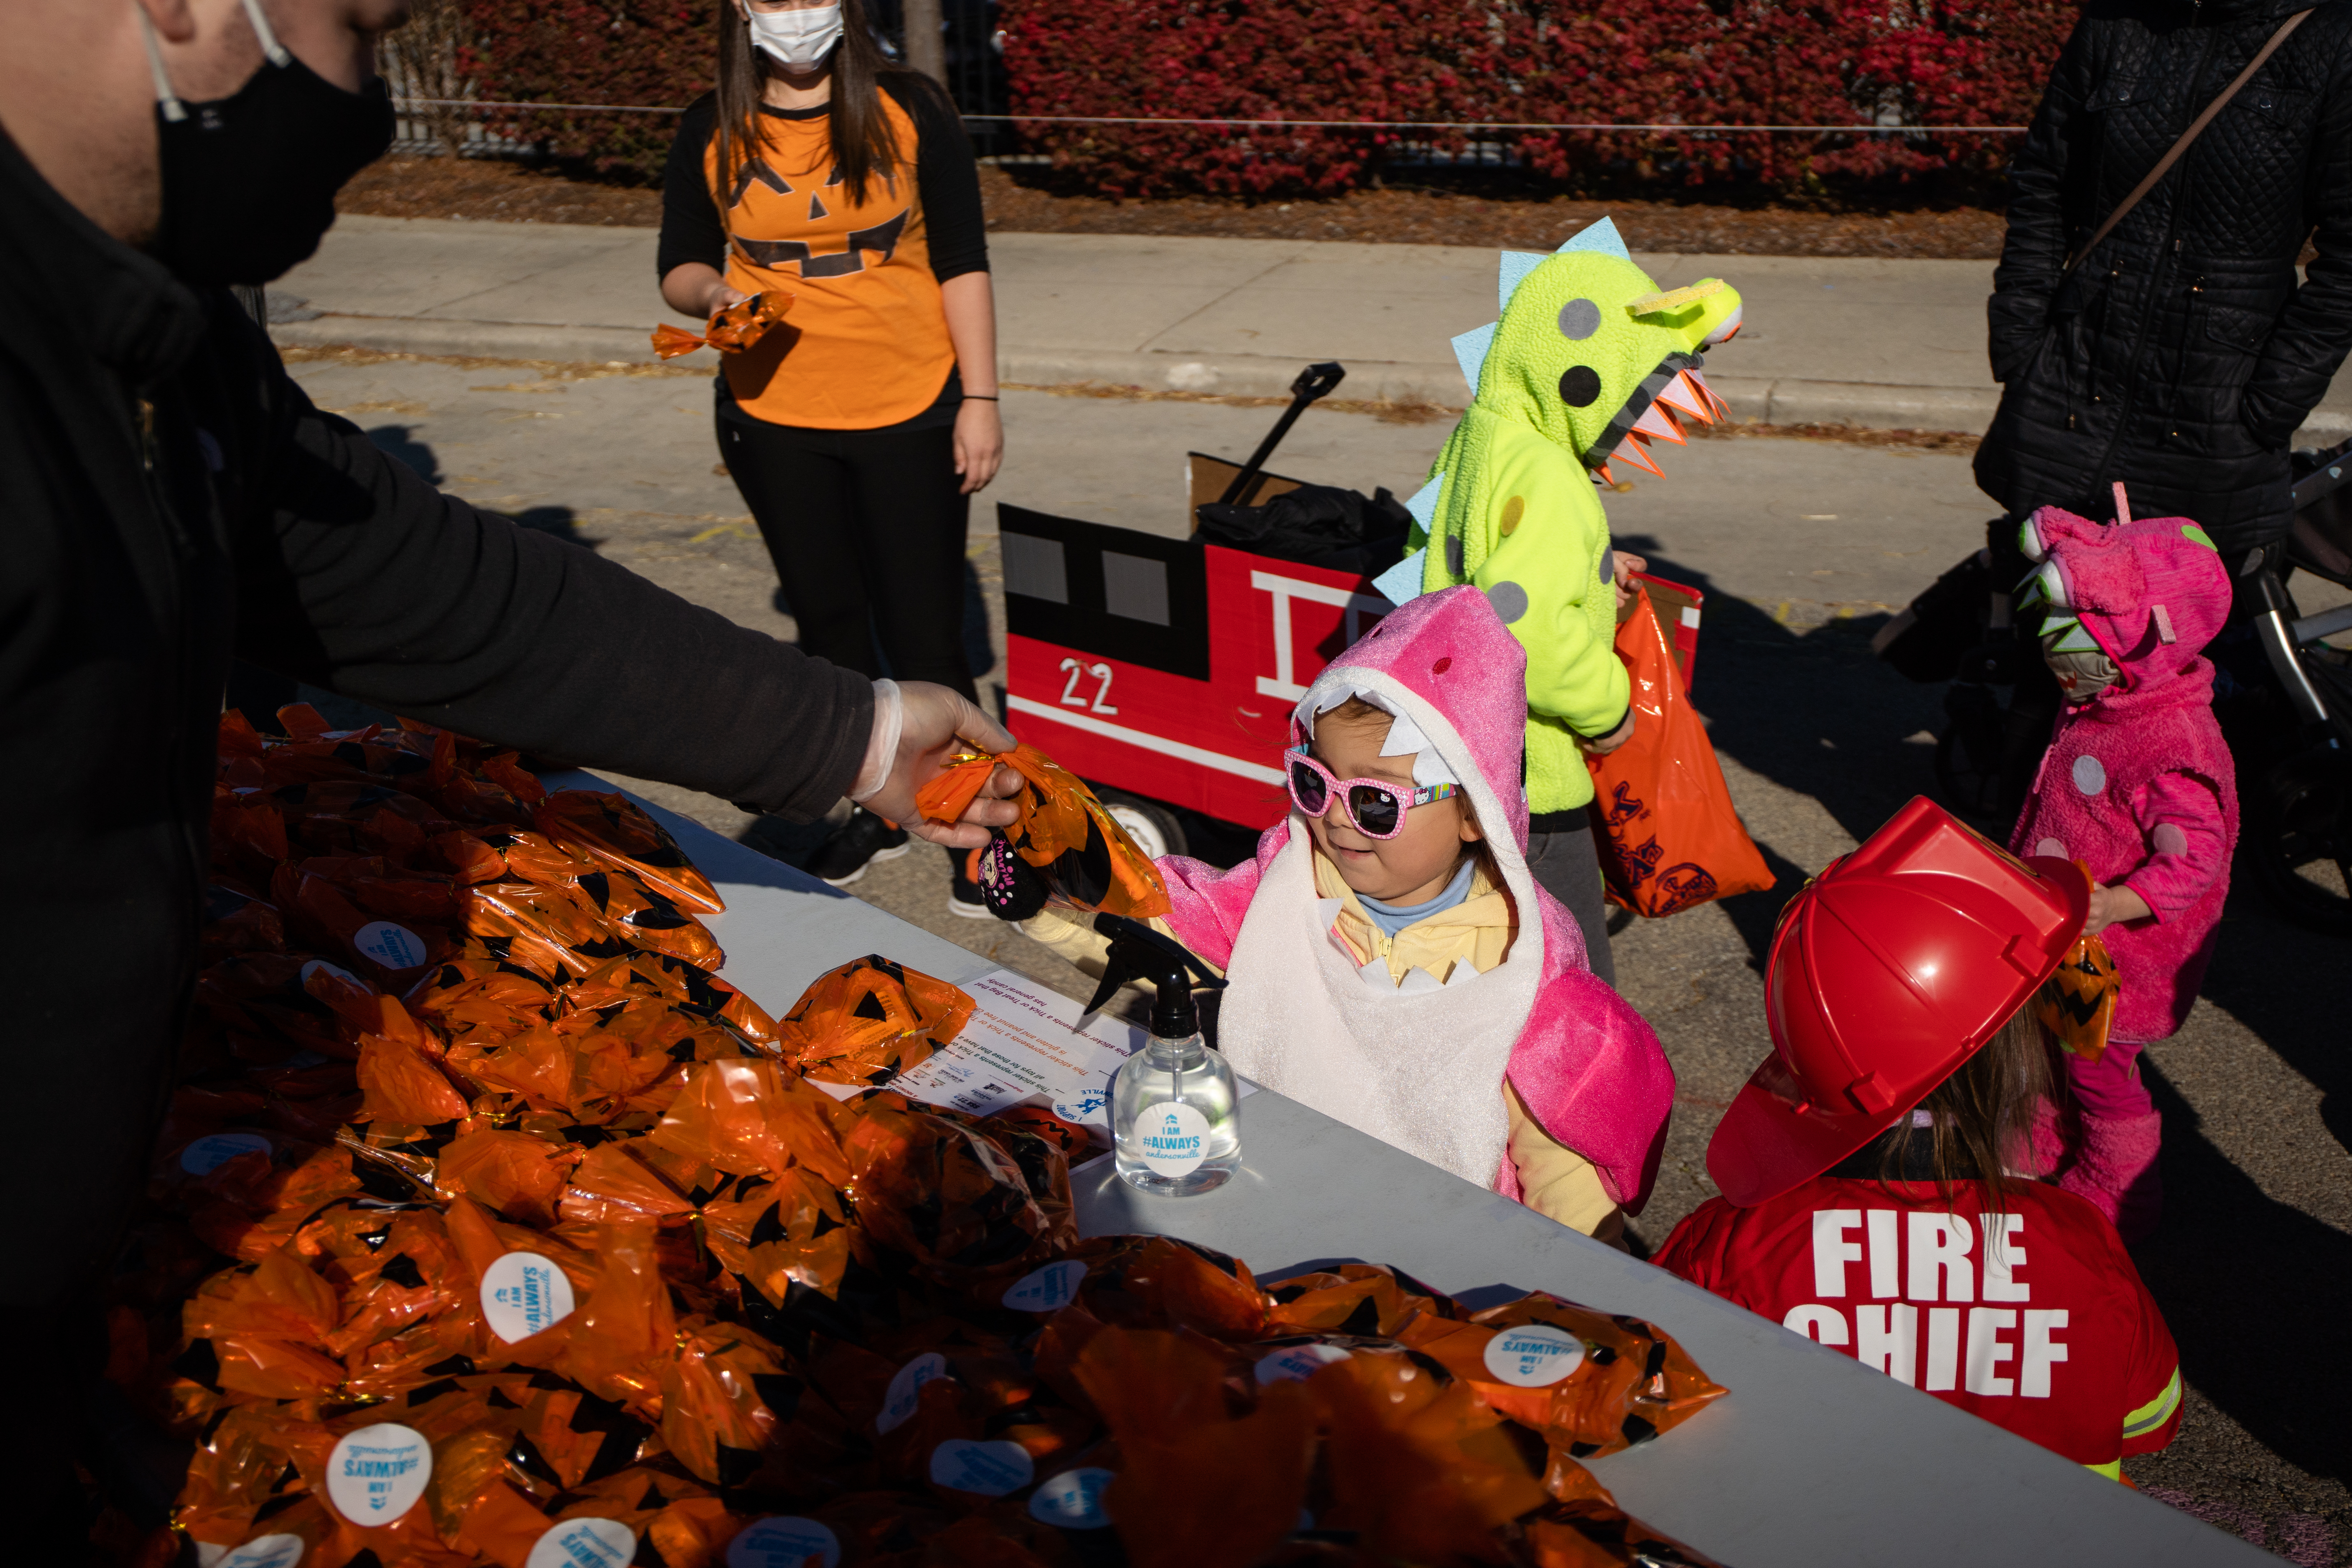 """Adrianna Jose, 3, receives candy during the Andersonville Chamber of Commerce's """"Halloween on Catalpa"""" trick-or-treating event near West Catalpa Avenue and North Clark Street in Andersonville, on Halloween 2020. People are still encouraged to wear masks and come up with socially distant ways to celebrate this year, too."""